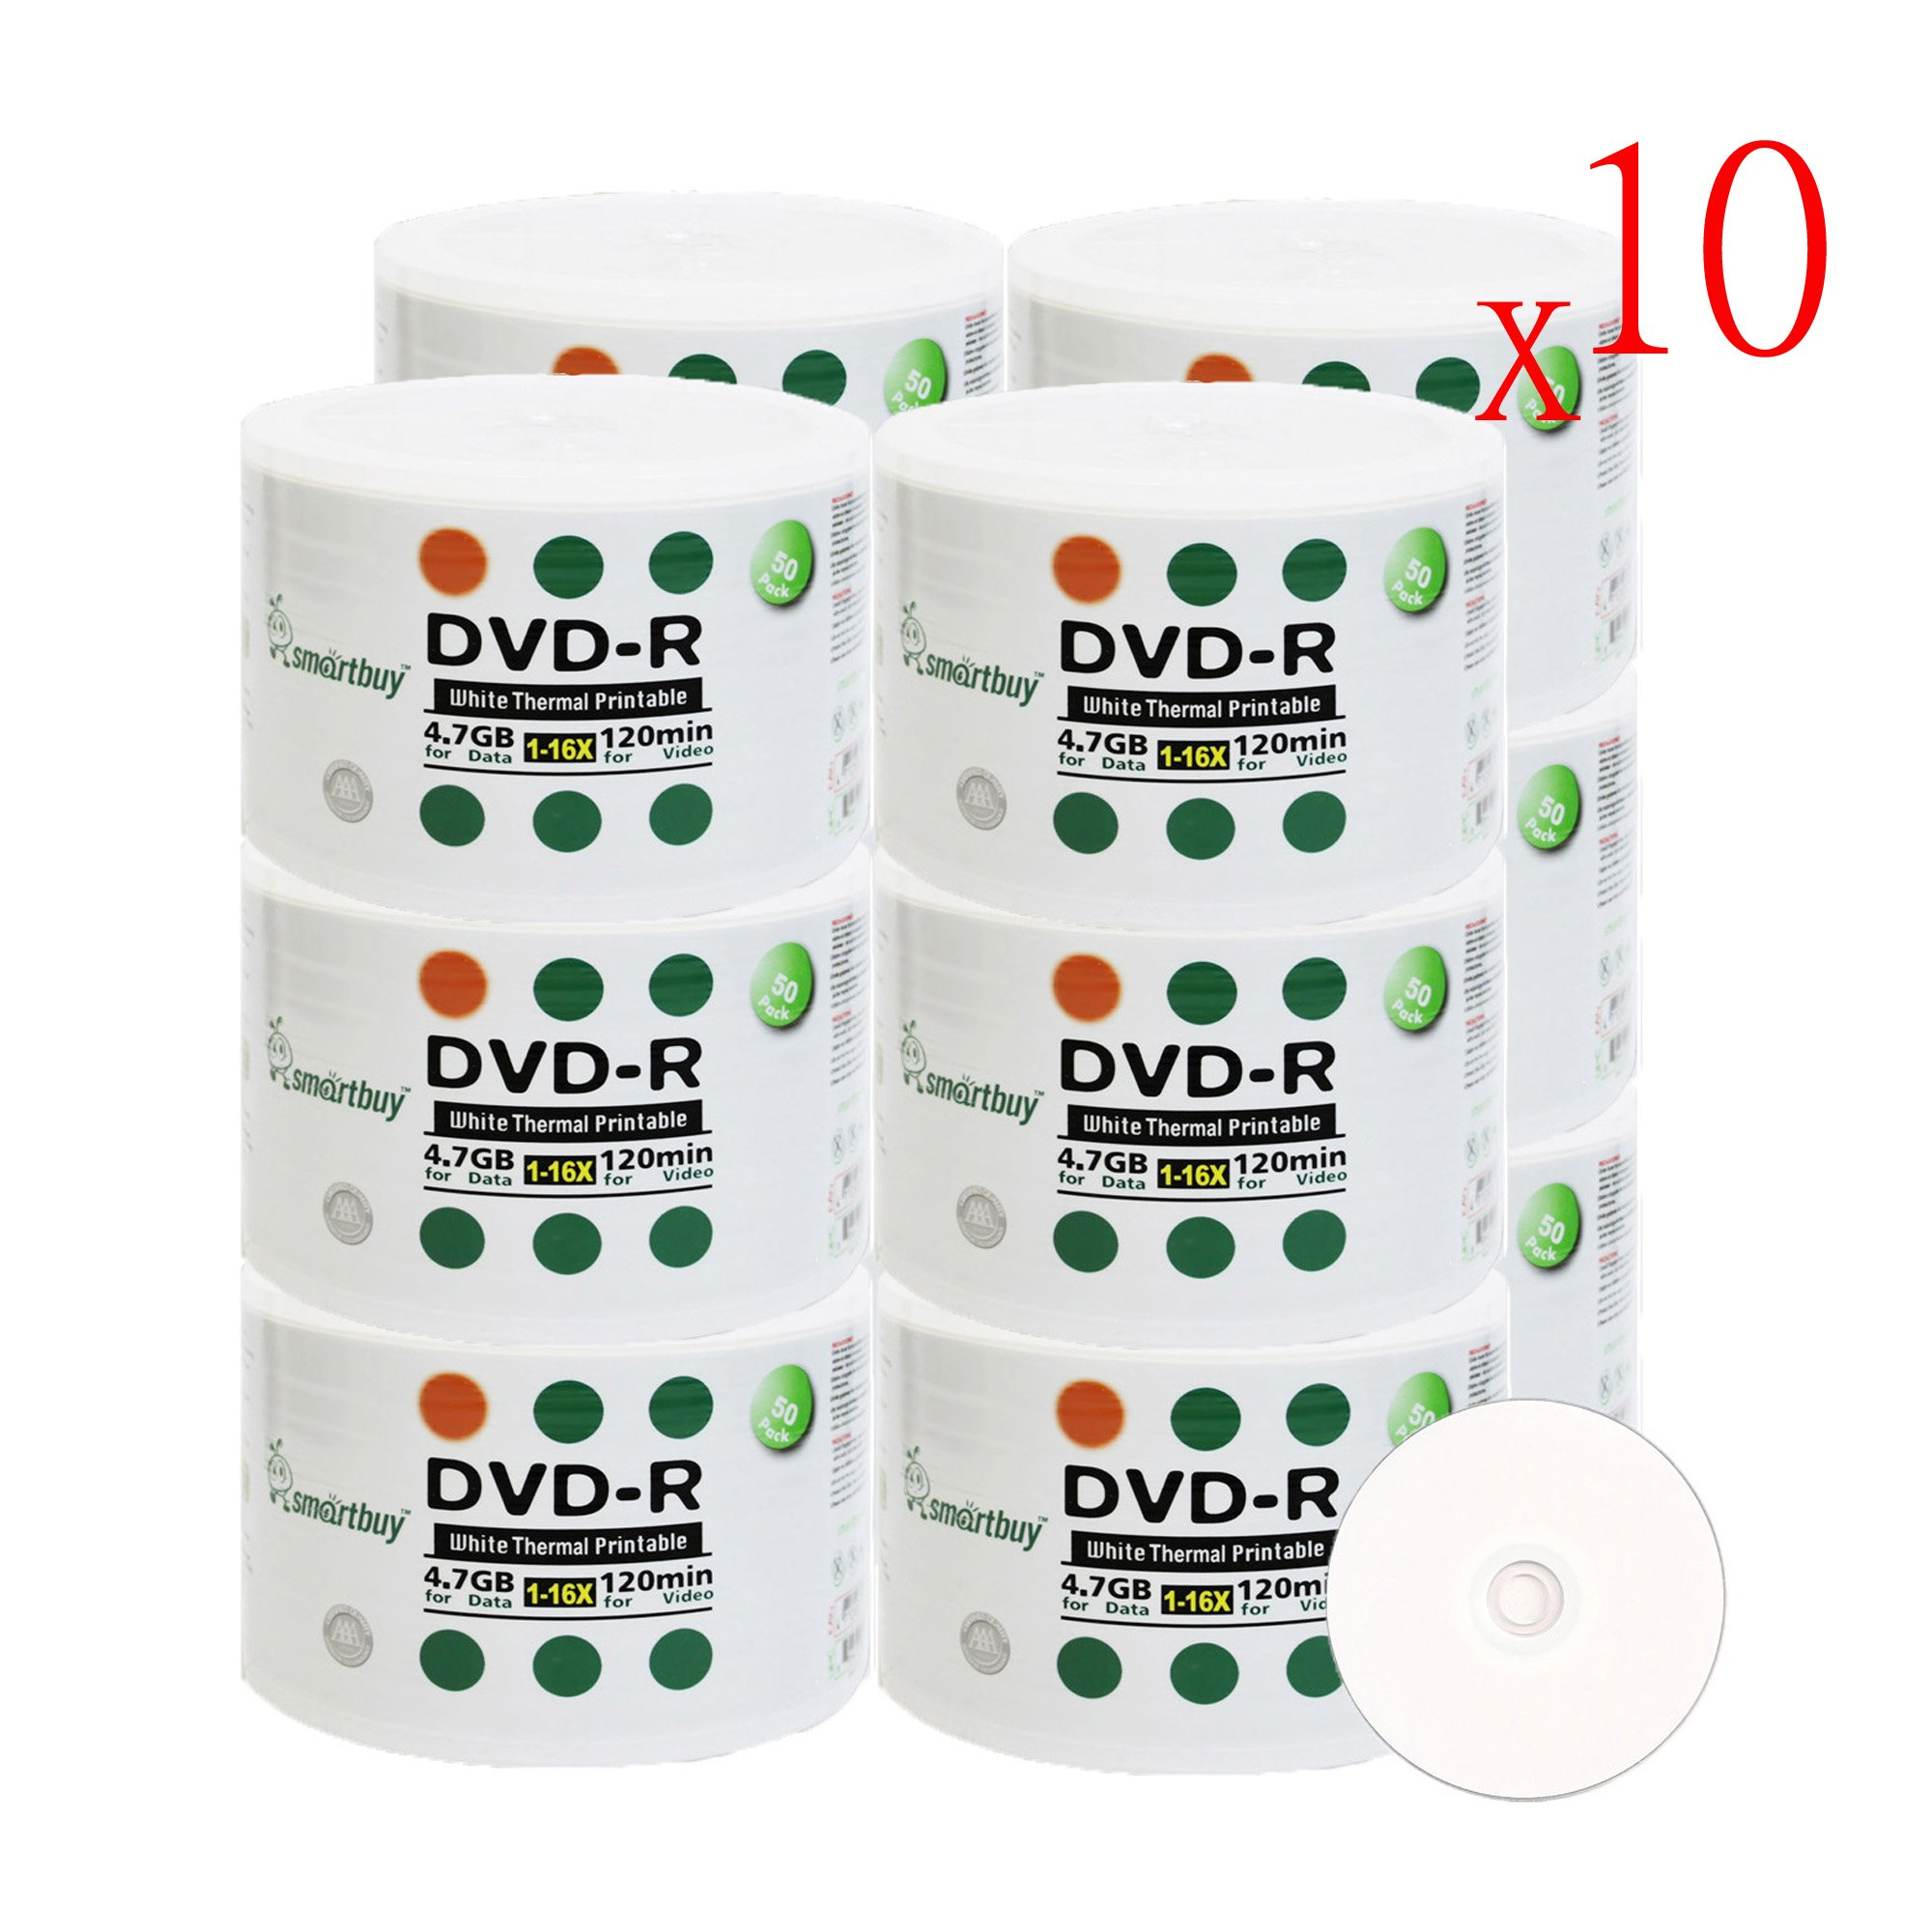 Smartbuy 6000-disc 4.7gb/120min 16x DVD-R White Thermal Hub Printable Blank Media Recordable Disc by Smartbuy (Image #1)